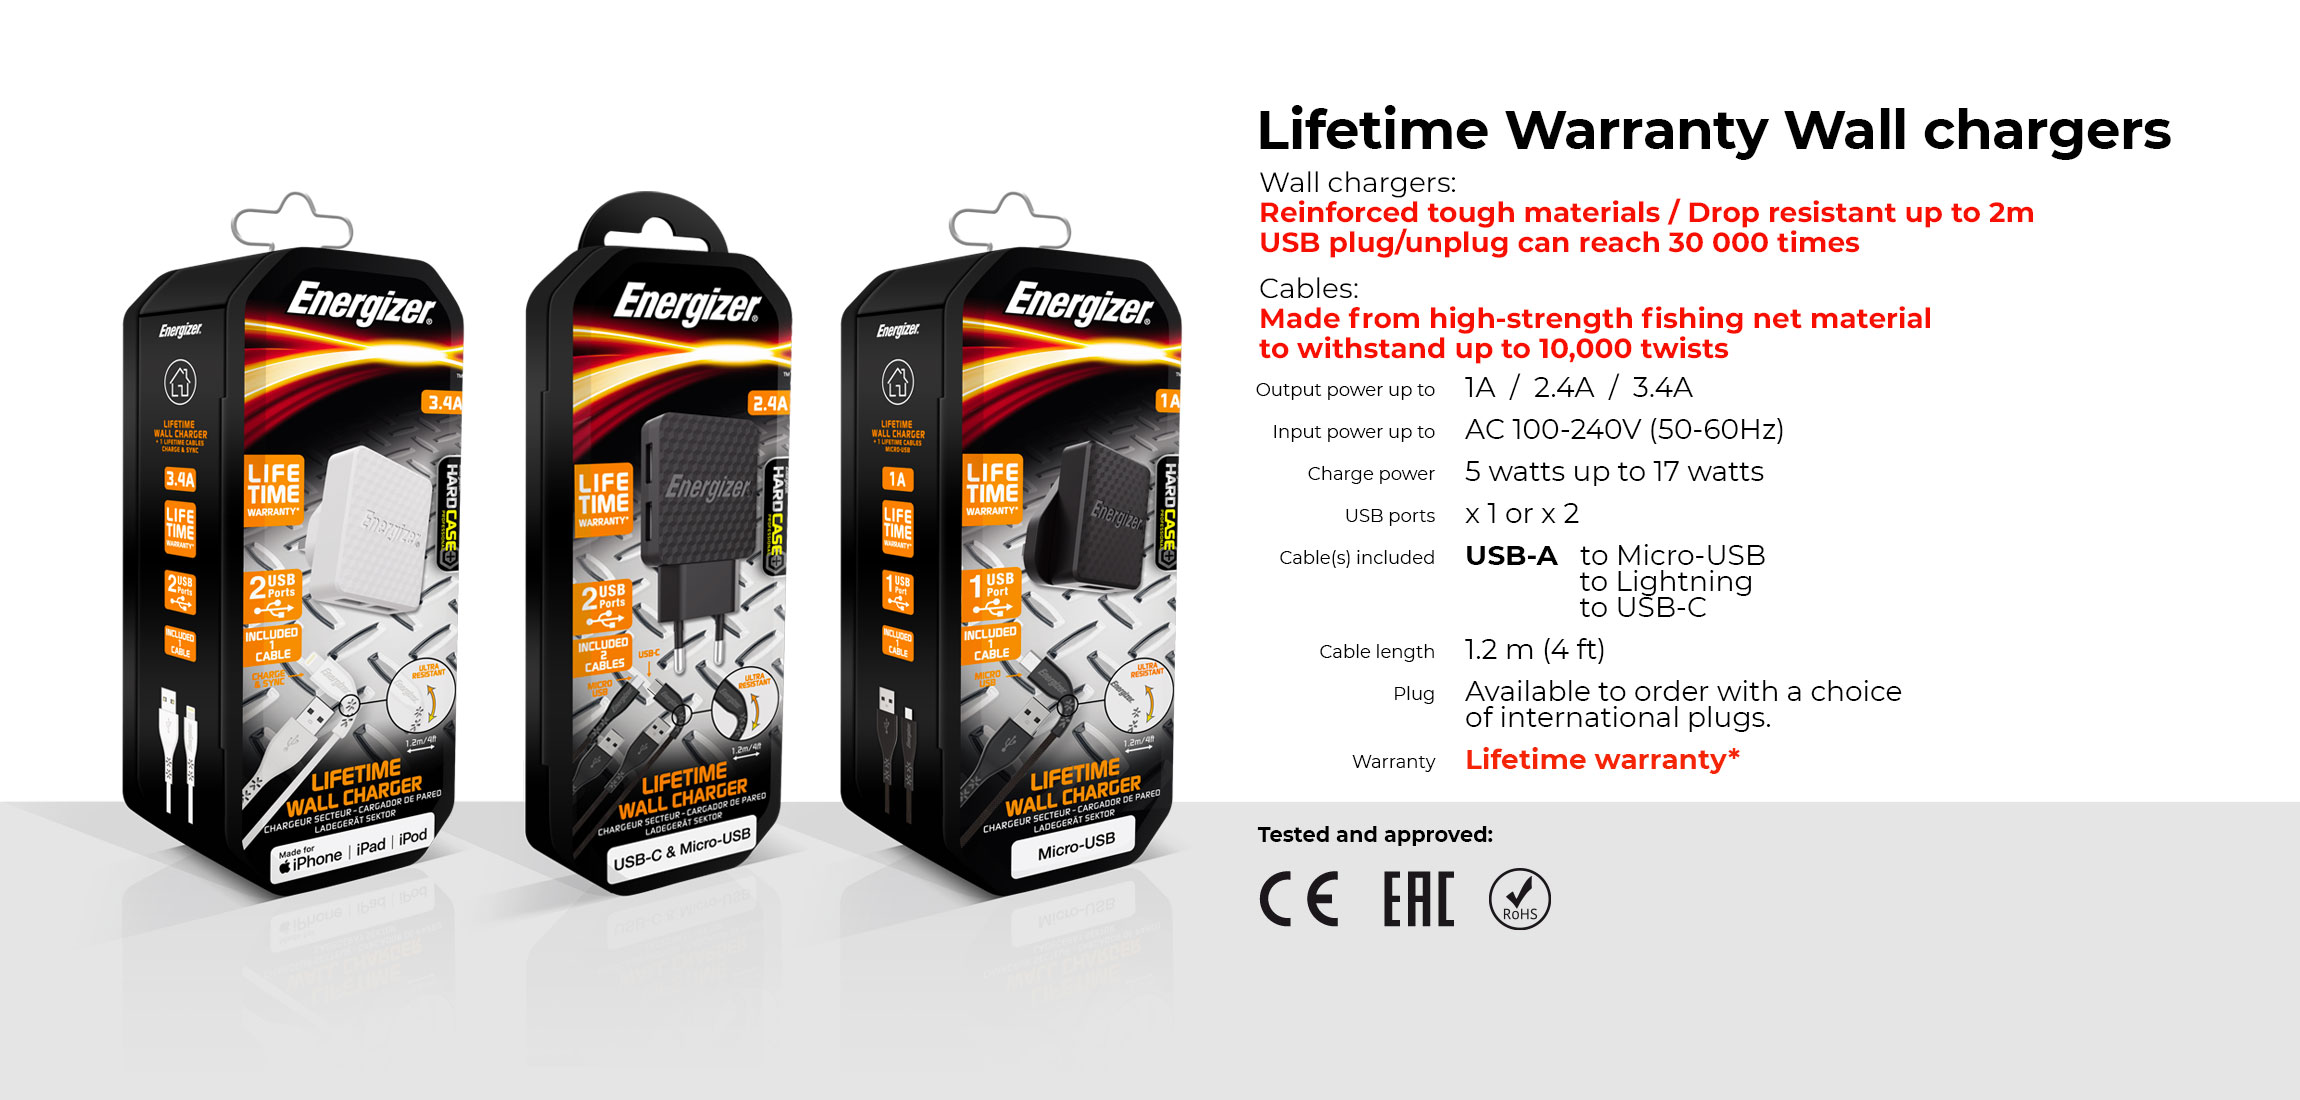 AT-wall-chargers-LIFE-pack-EN.jpg